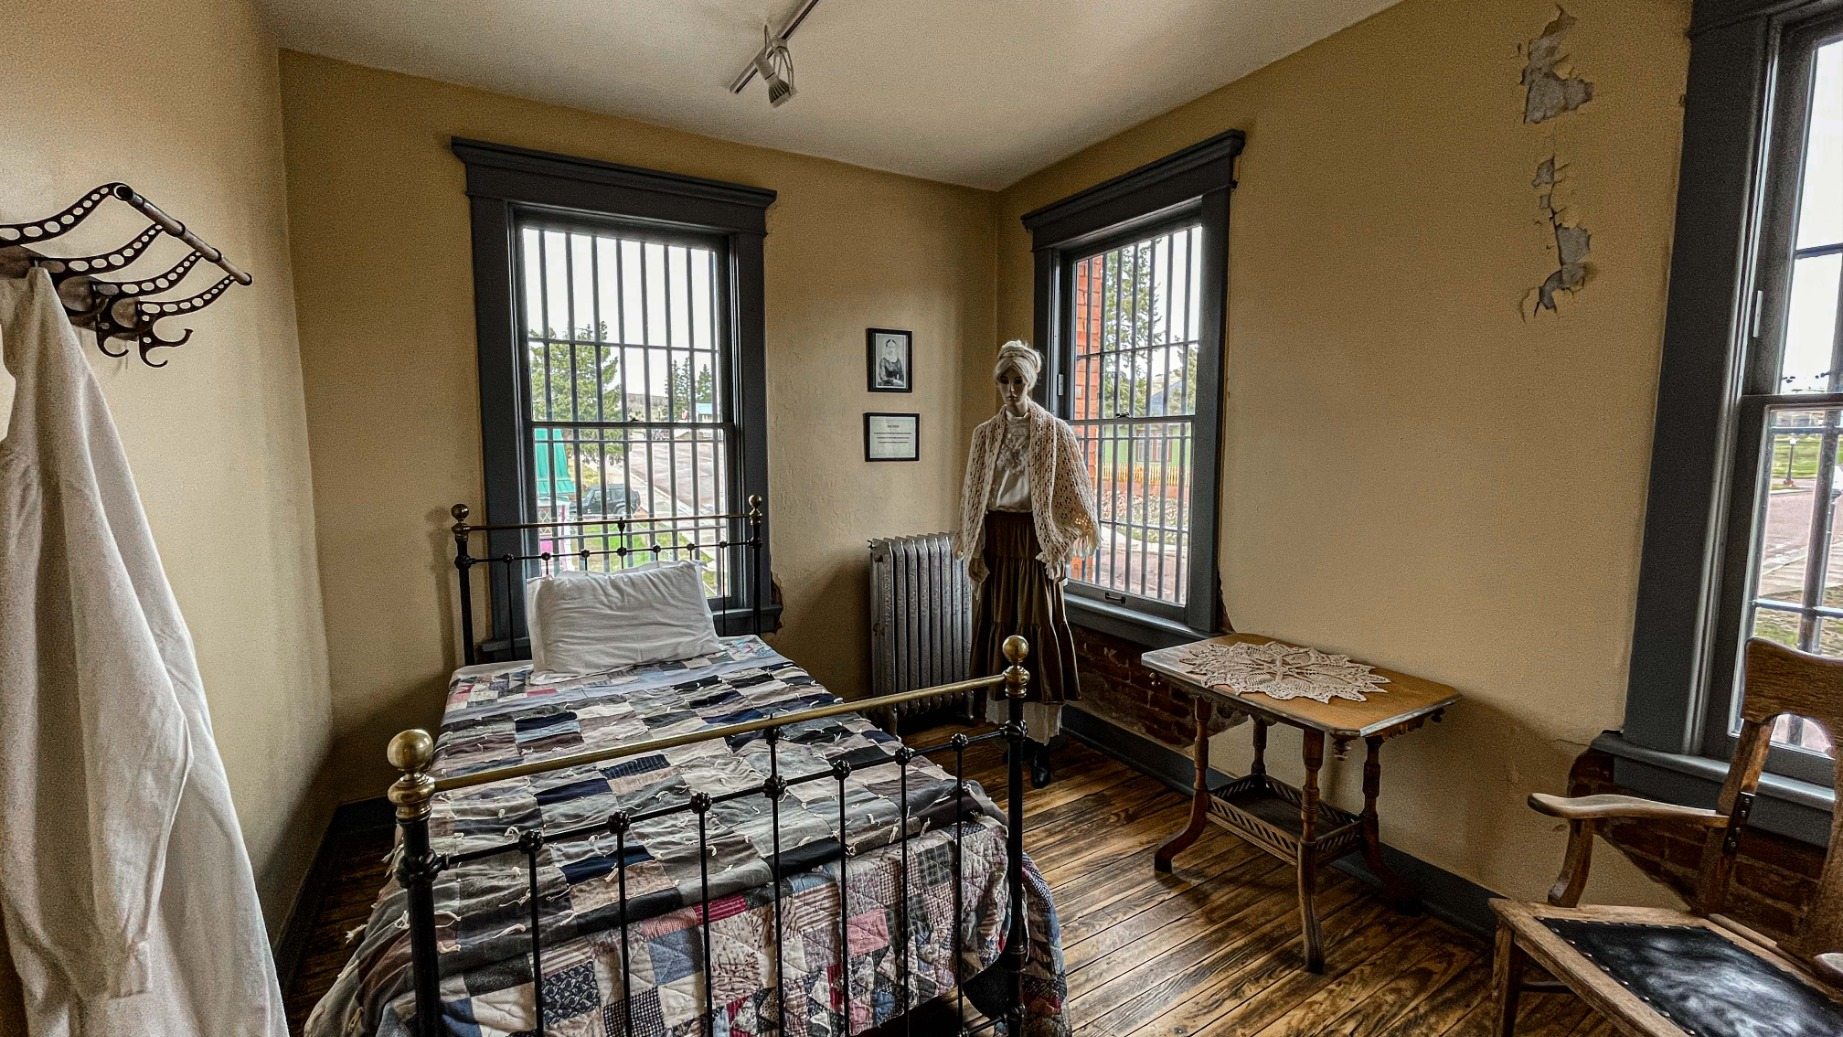 Outlaws And Lawmen Jail Museum Ghost Hunt, Haunted, Overnight, Paranormal